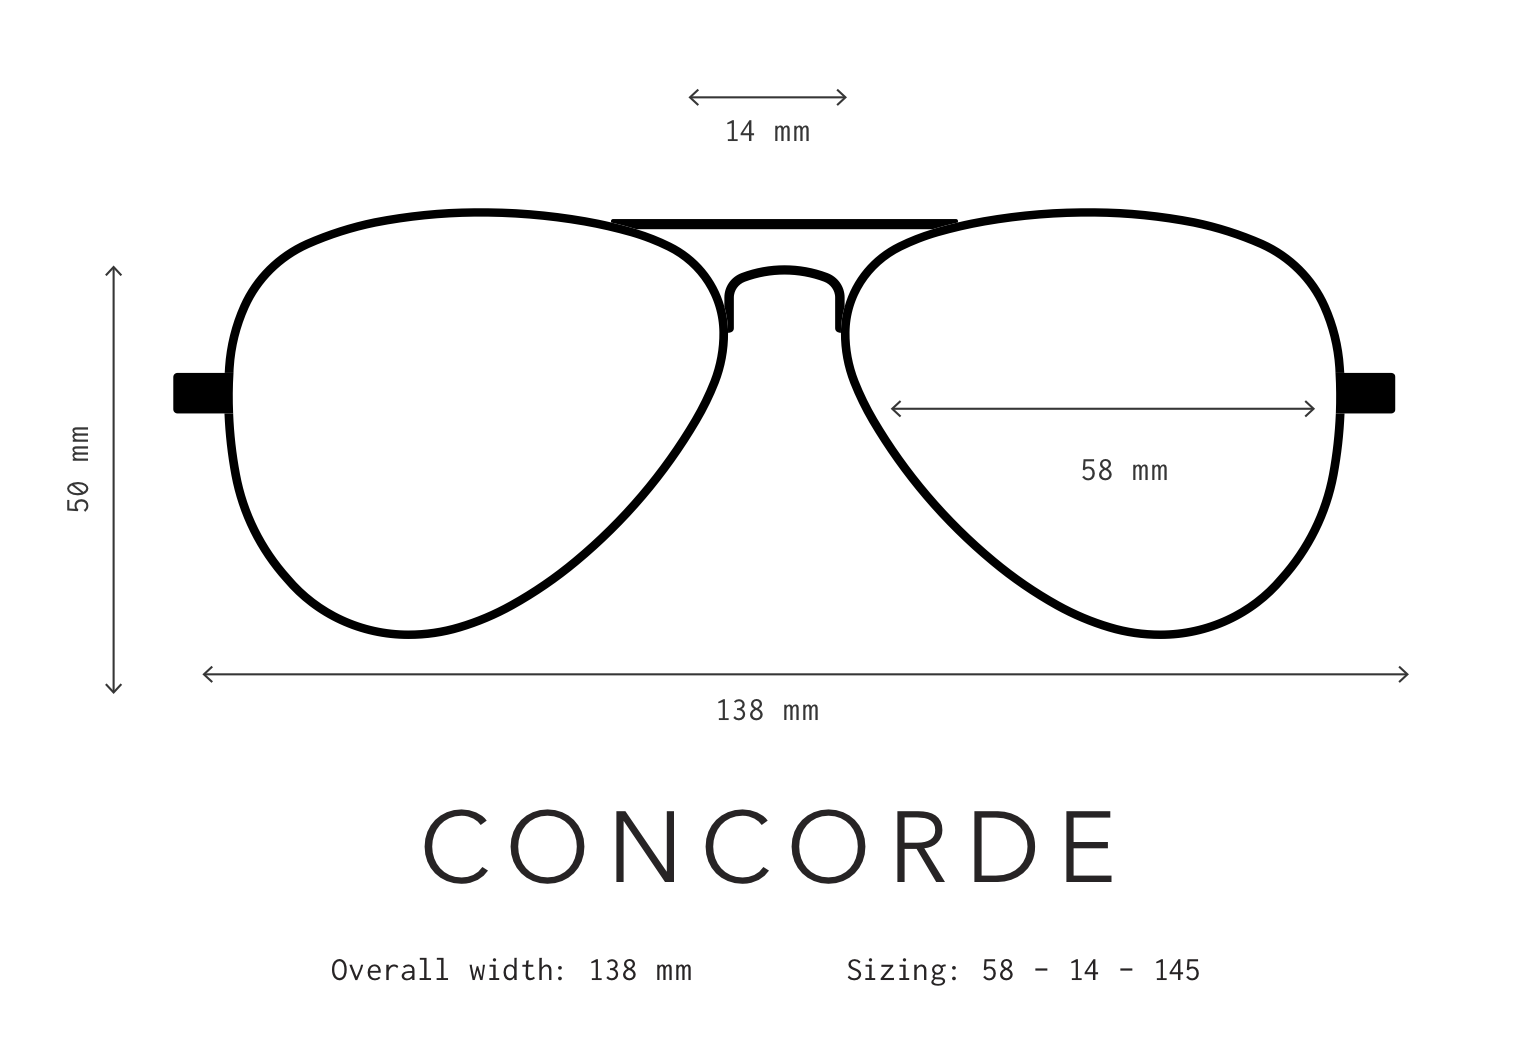 Concorde Sunglasses Sizing Information